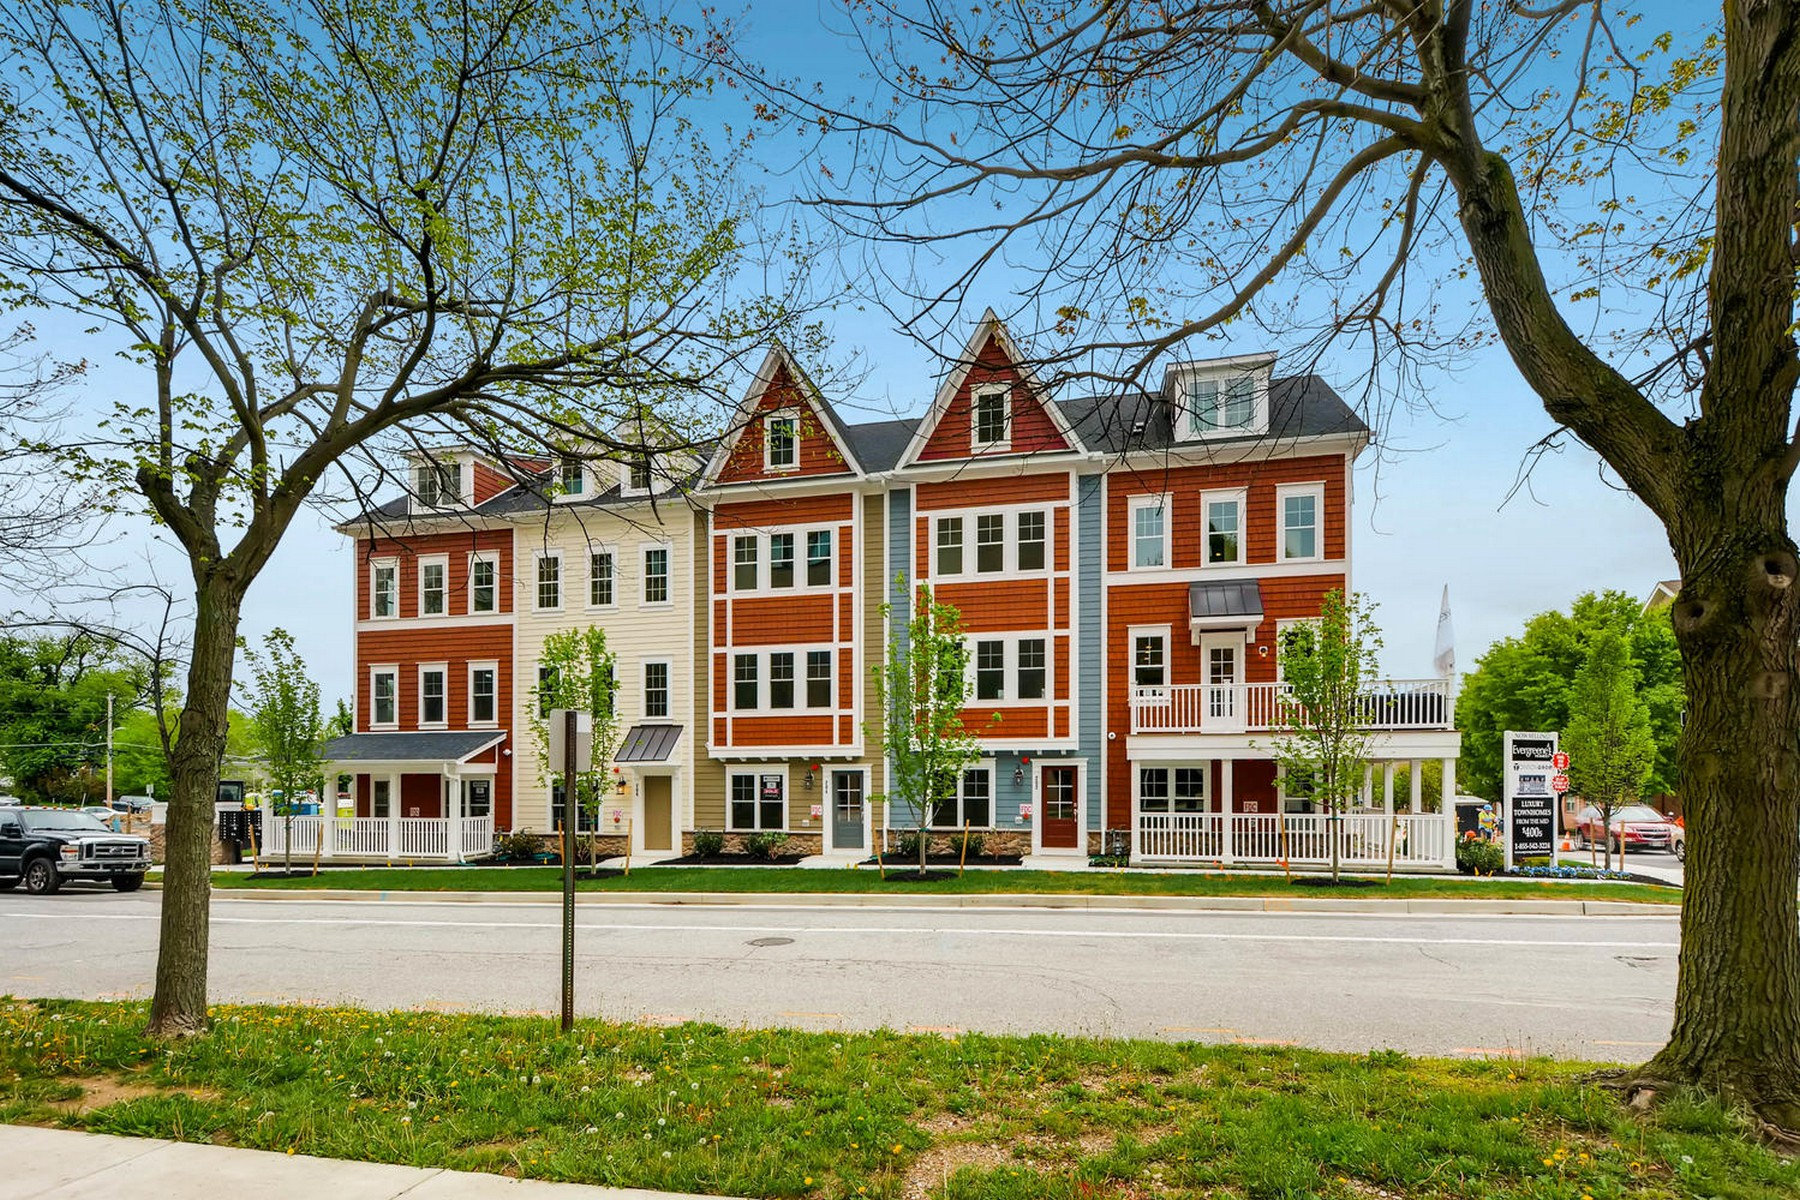 Casa unifamiliar adosada (Townhouse) por un Venta en Towson Mews 311 Davage Lane E #Model Towson, Maryland 21286 Estados Unidos